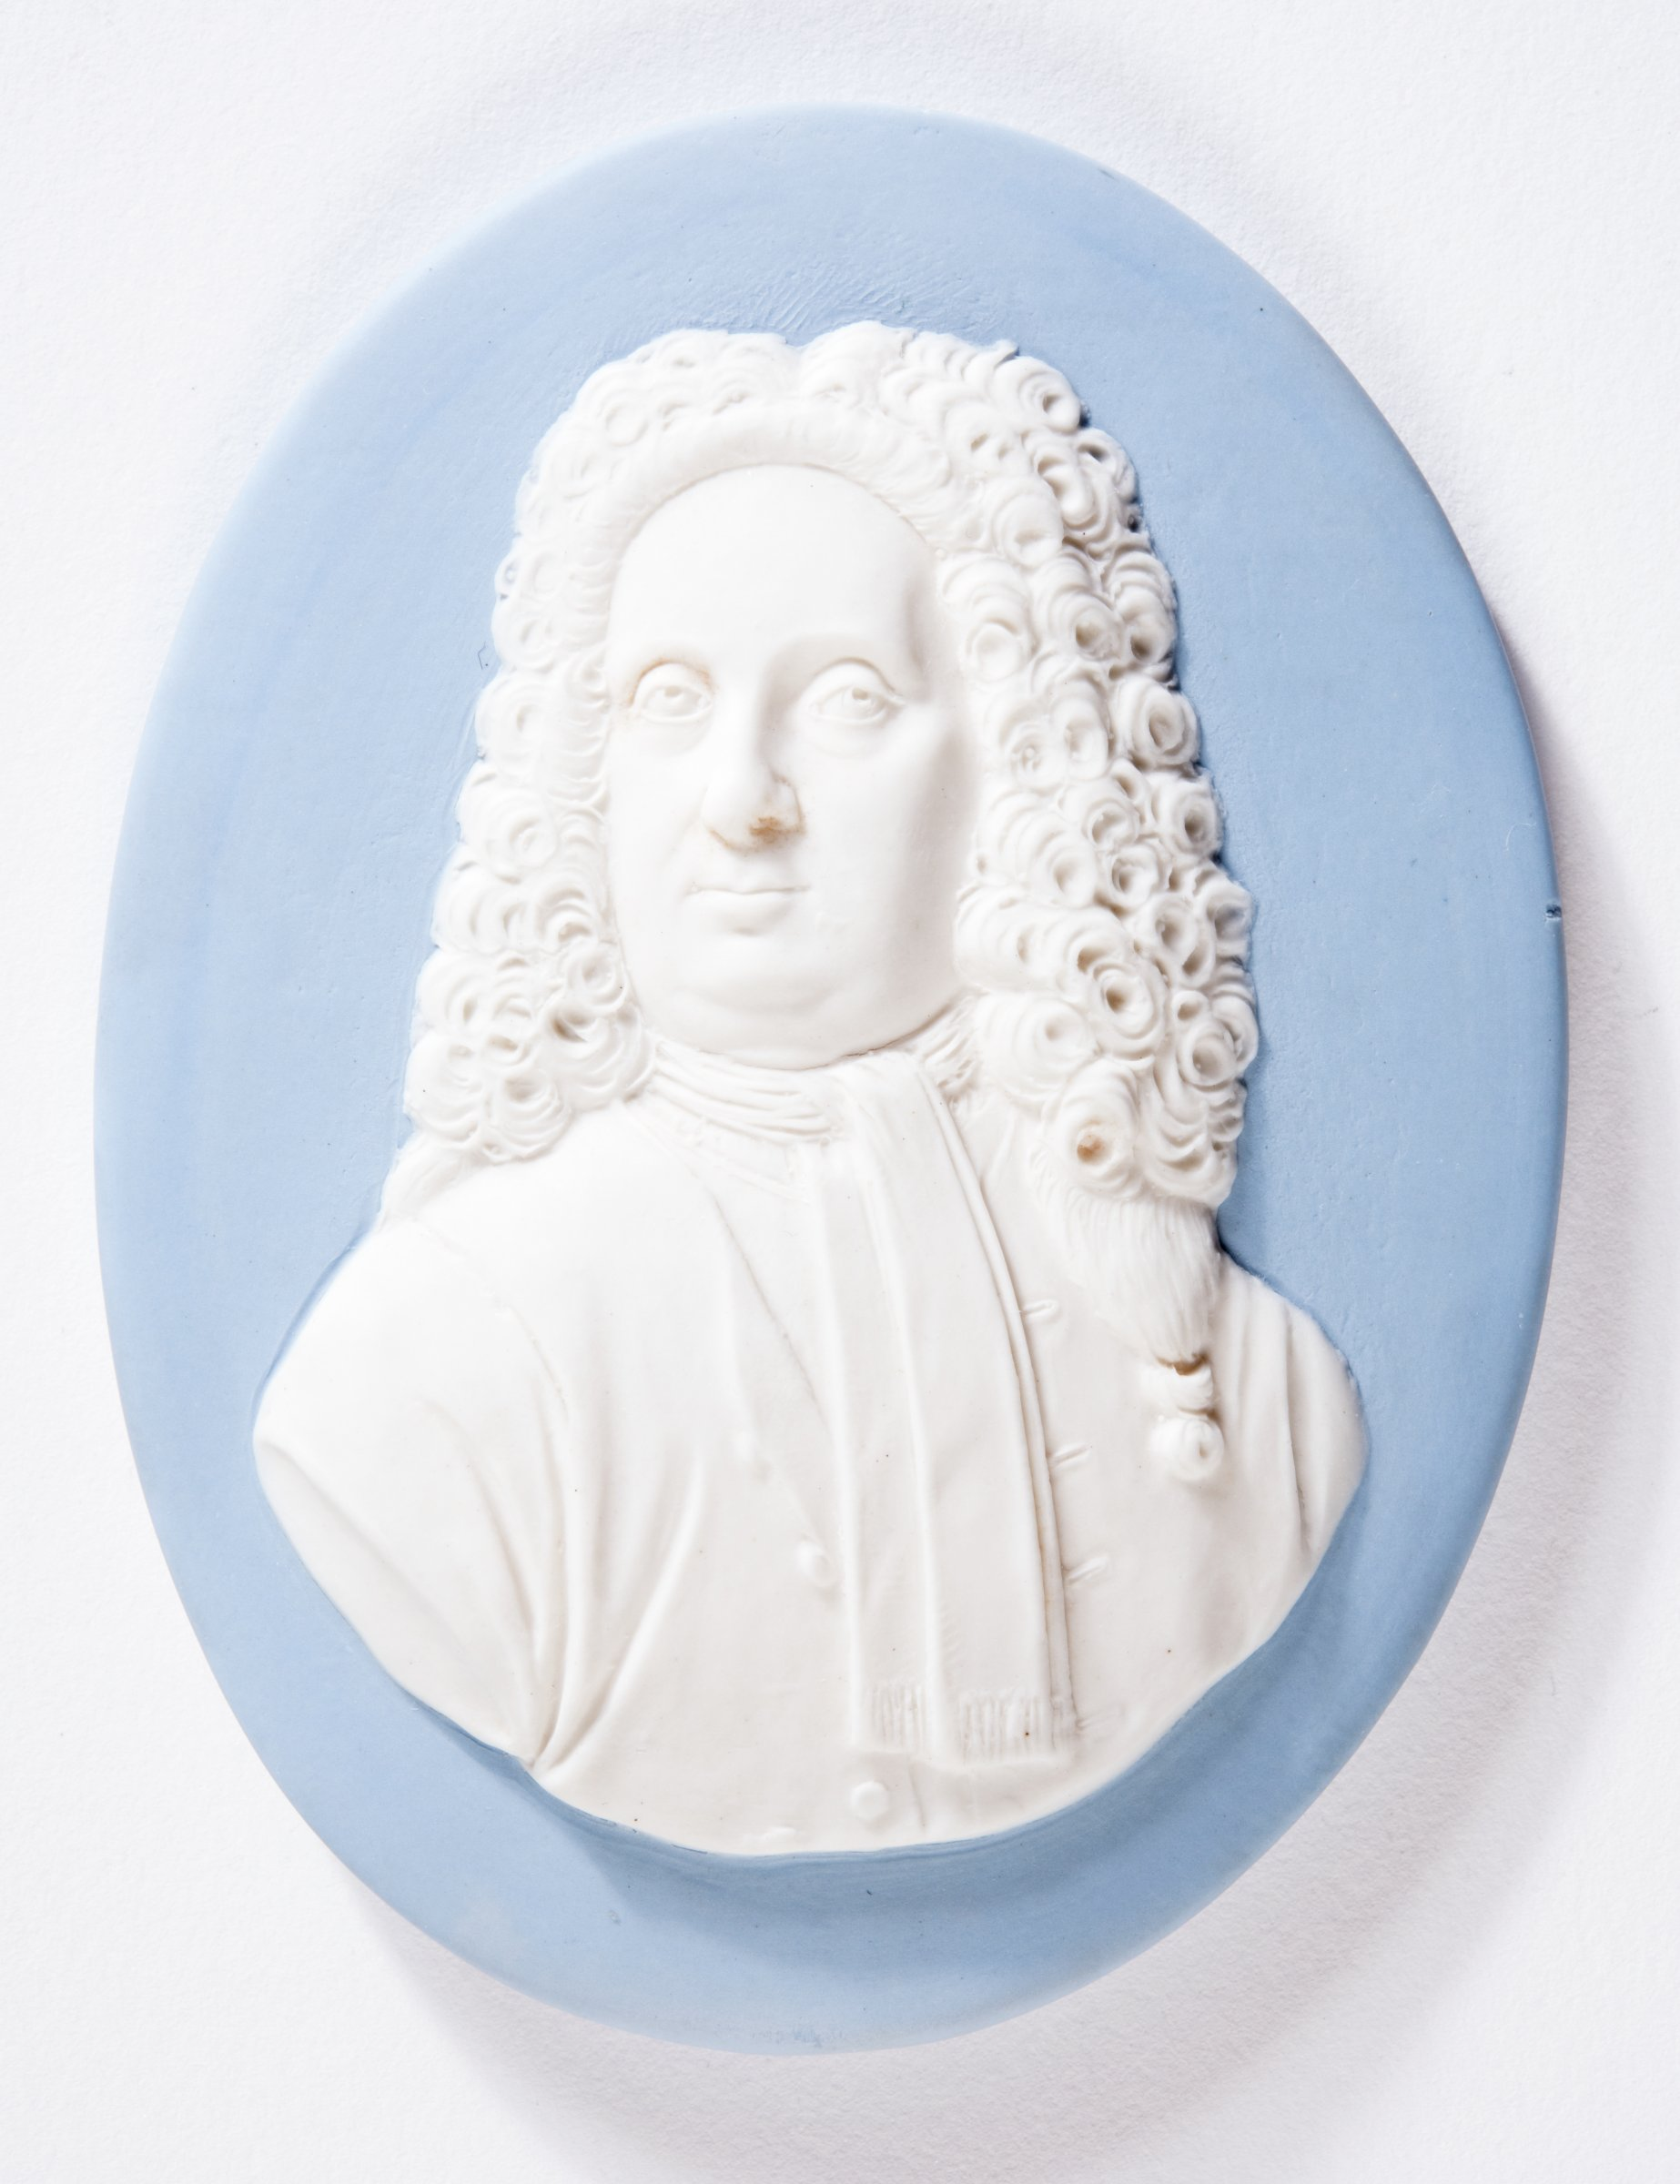 Light blue and white jasper portrait medallion depicting the potter John Philip Elers (1664-1738) slightly right with his head turned to the left, wearing a wig and neck scarf.